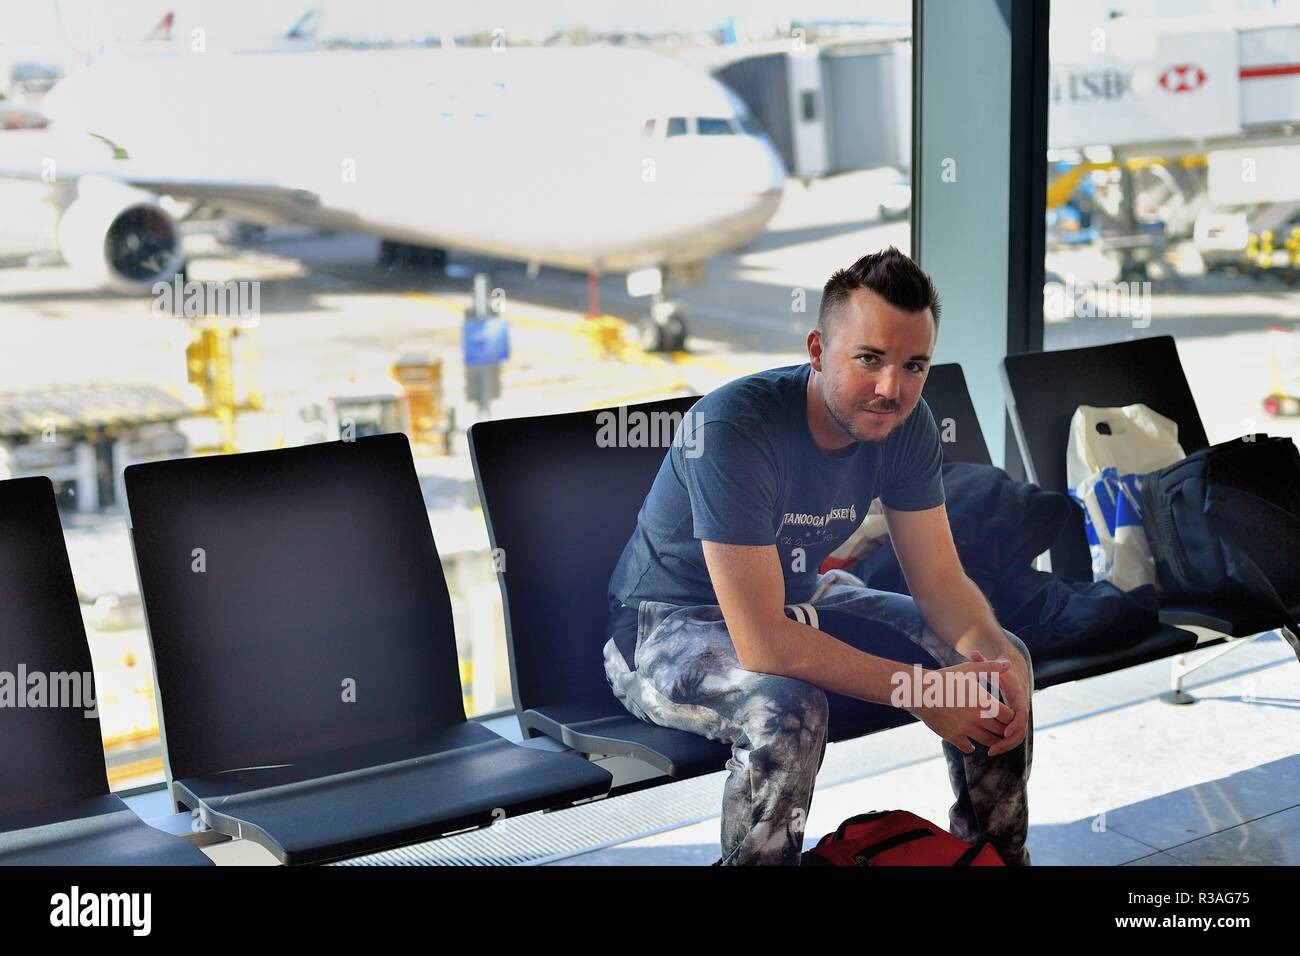 London, England, United Kingdom. International departing passenger waiting at his gate prior to boarding a flight. - Stock Image